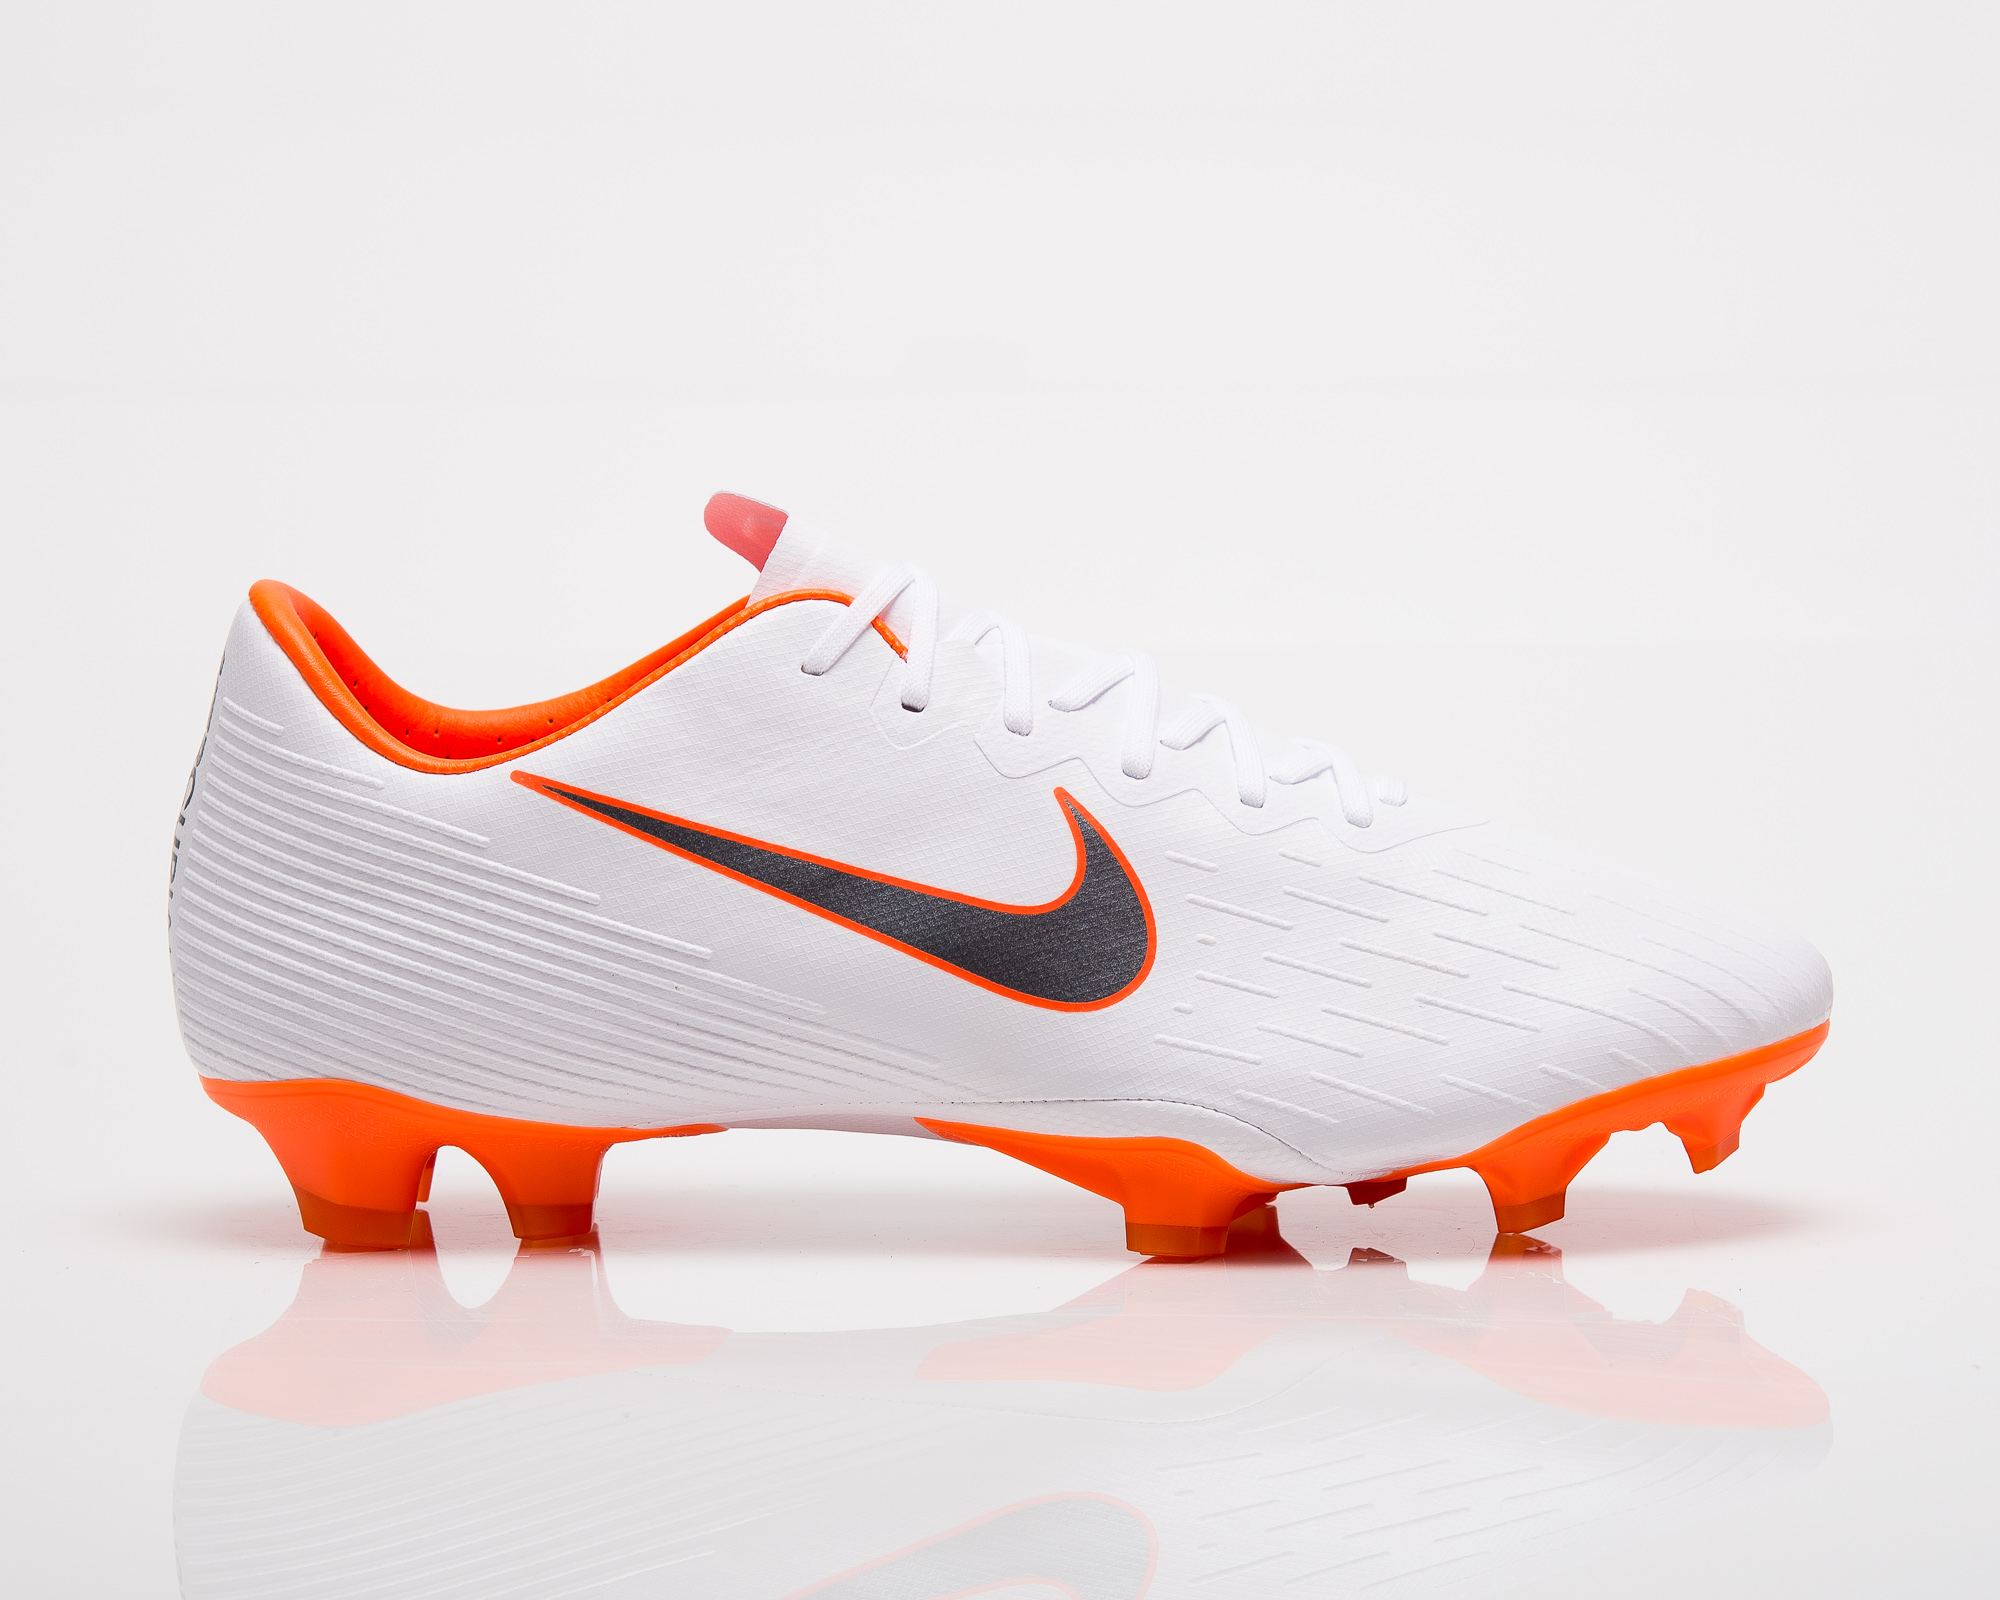 lower price with 7e717 02559 Nike Mercurial Vapor XII Pro FG